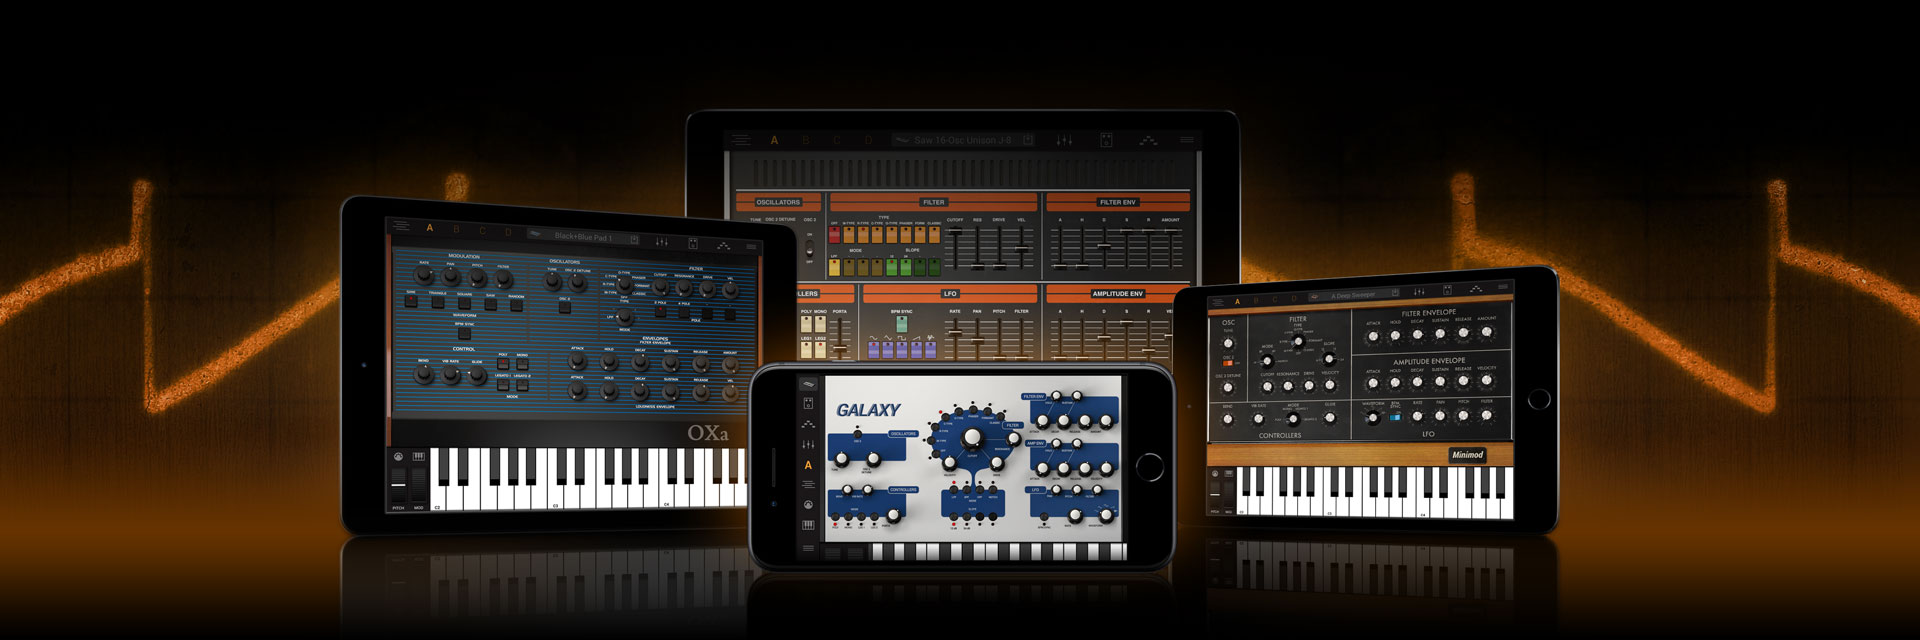 Ik Multimedia Syntronik Ios Download Image Darlington Pair Amplifier Circuit Pc Android Iphone The Legendary Synth Powerhouse For And Ipad